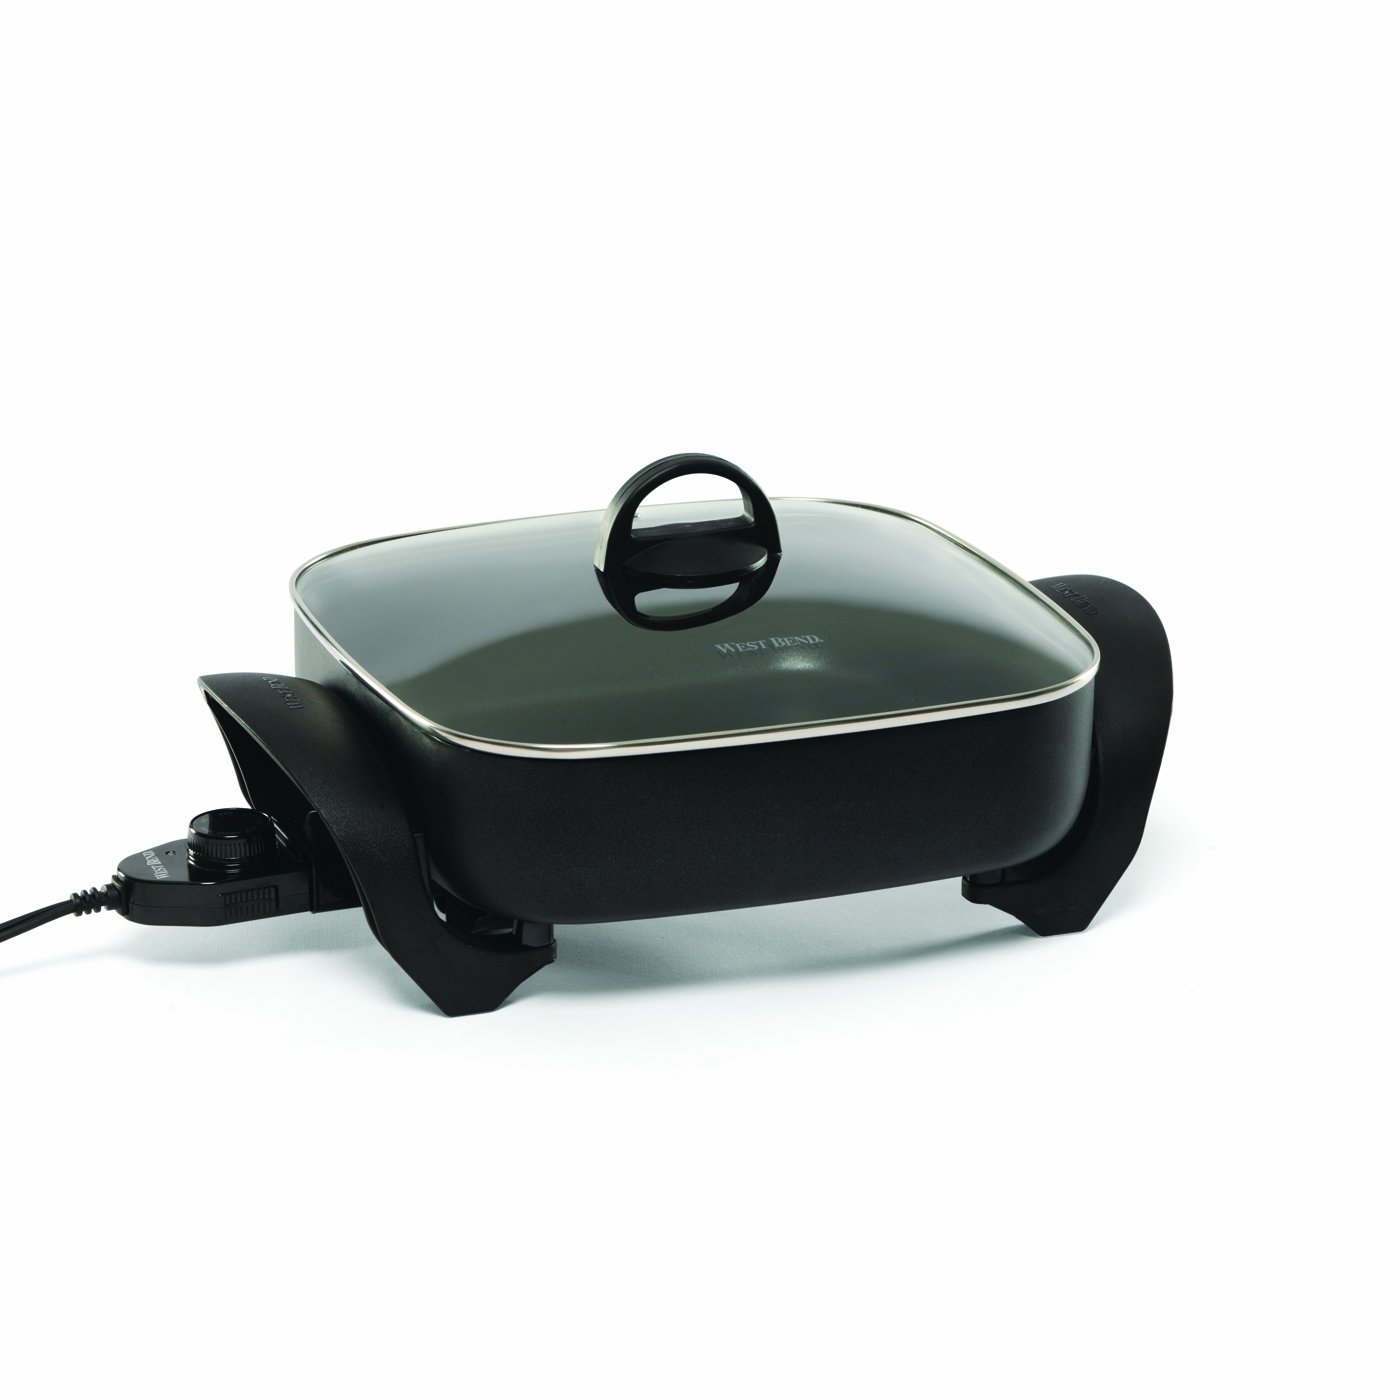 West Bend 72212 Electric Extra-Deep Square Nonstick Skillet, 12-Inch, Black